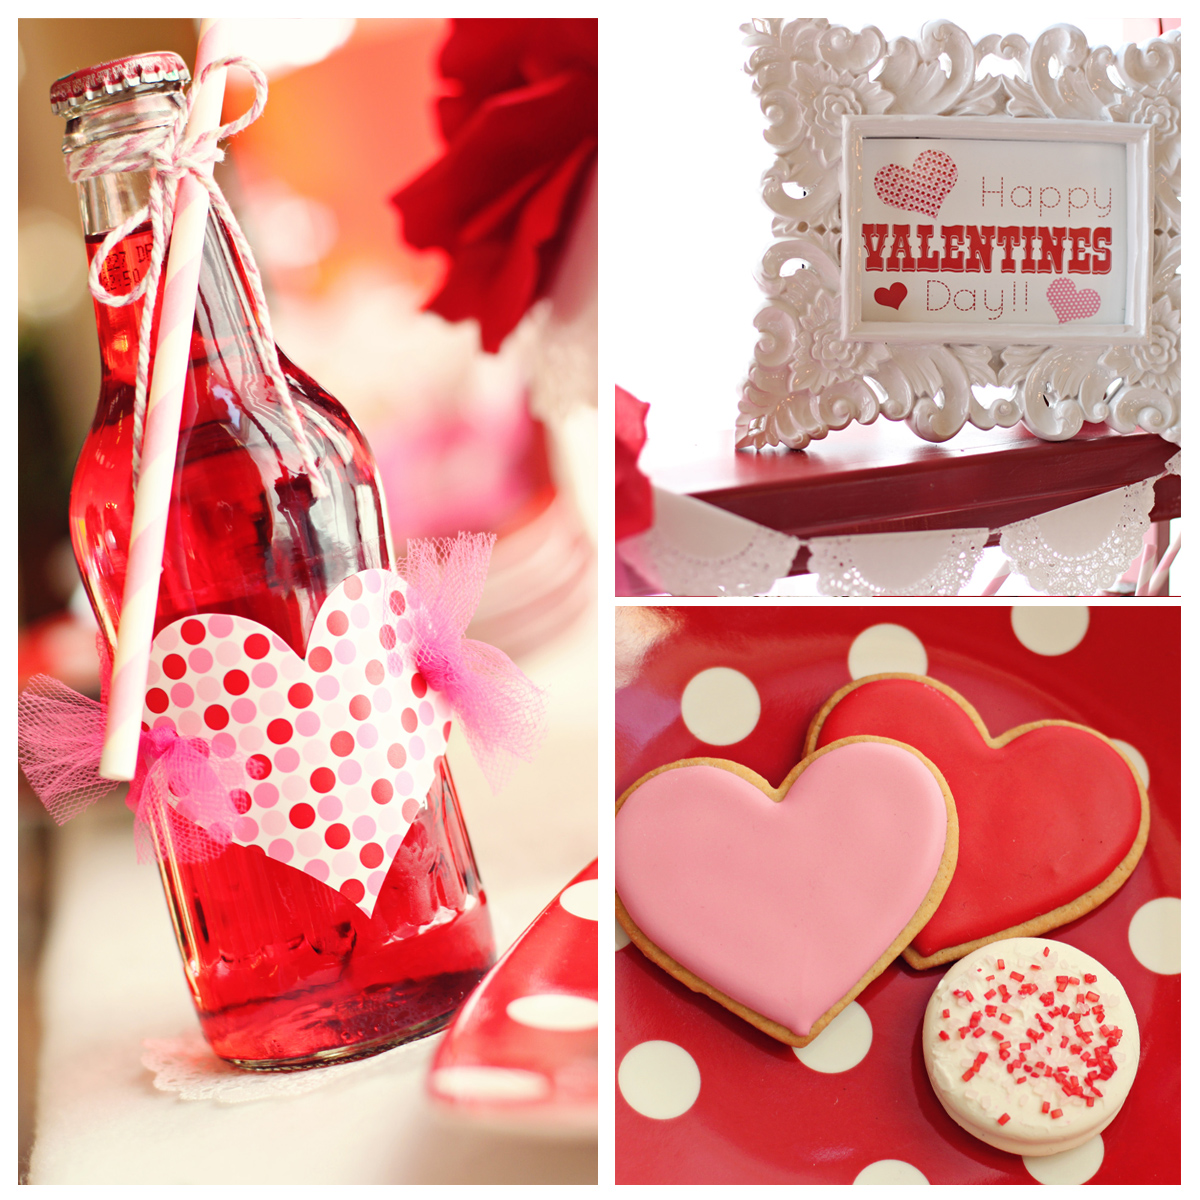 Valentines Party Ideas. Outdoor Seating Ideas For Parties. Creative Ideas With Pallets. Tattoo Designs Yakuza. Proposal Ideas For Halloween. Bathroom Remodel Ideas With Tub And Shower. Backyard Gift Ideas For Dad. Small Kitchen Backsplash Ideas Pictures. Kitchen Dining Extension Design Ideas